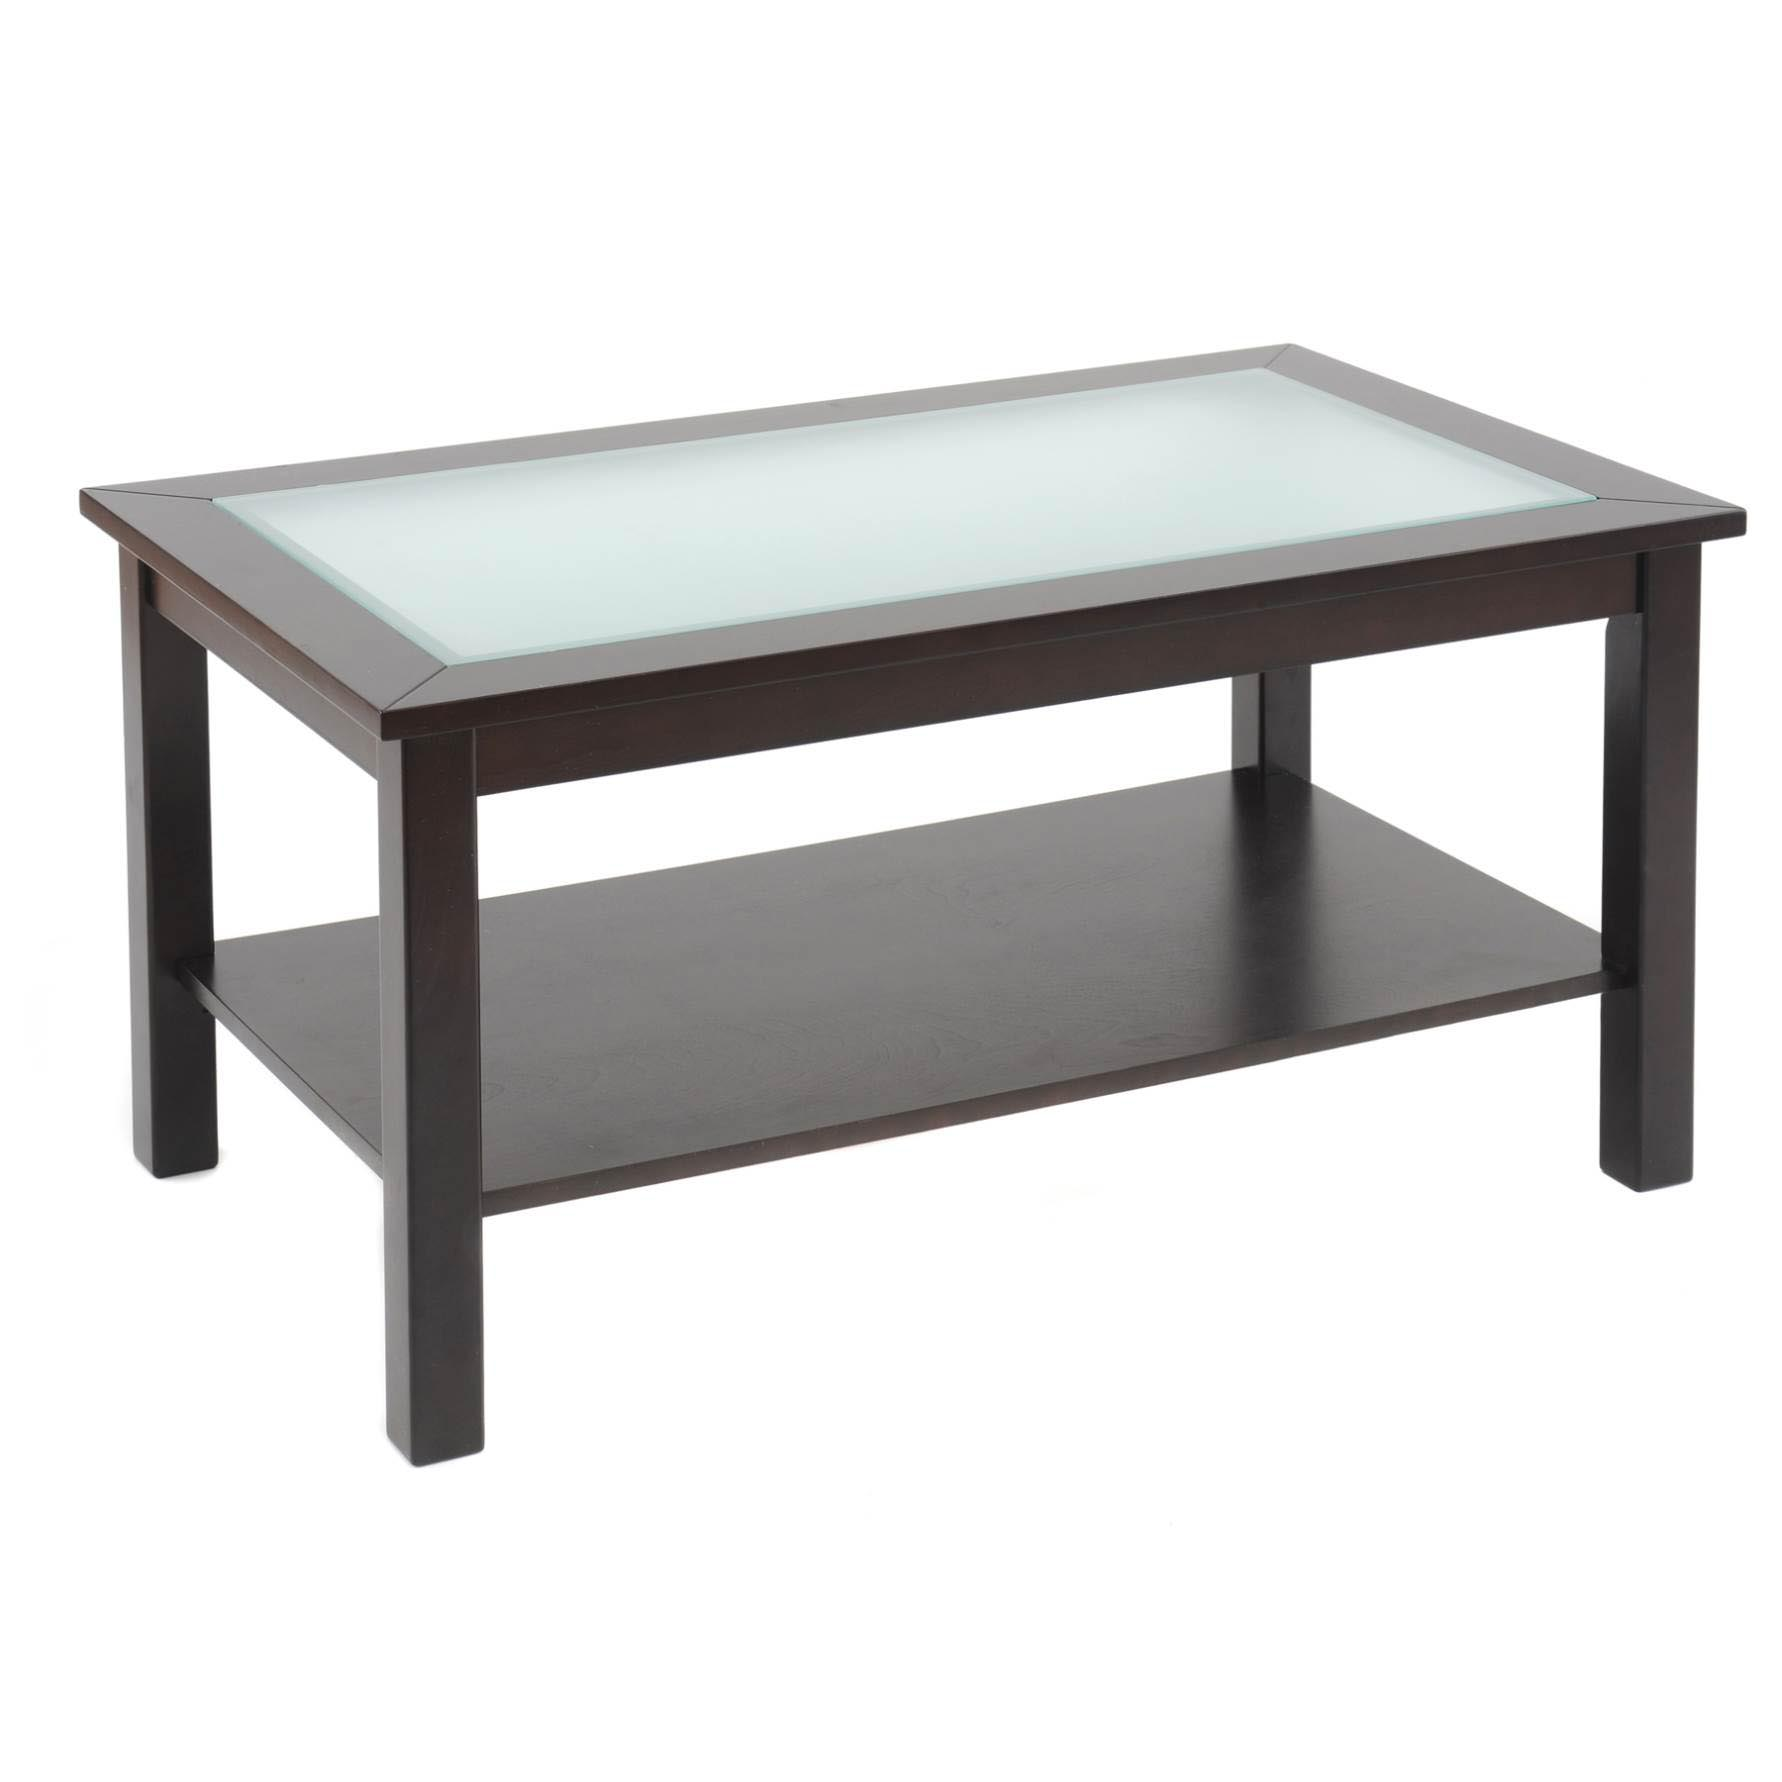 Glass display coffee table ikea coffee table design ideas for Ikea glass table tops